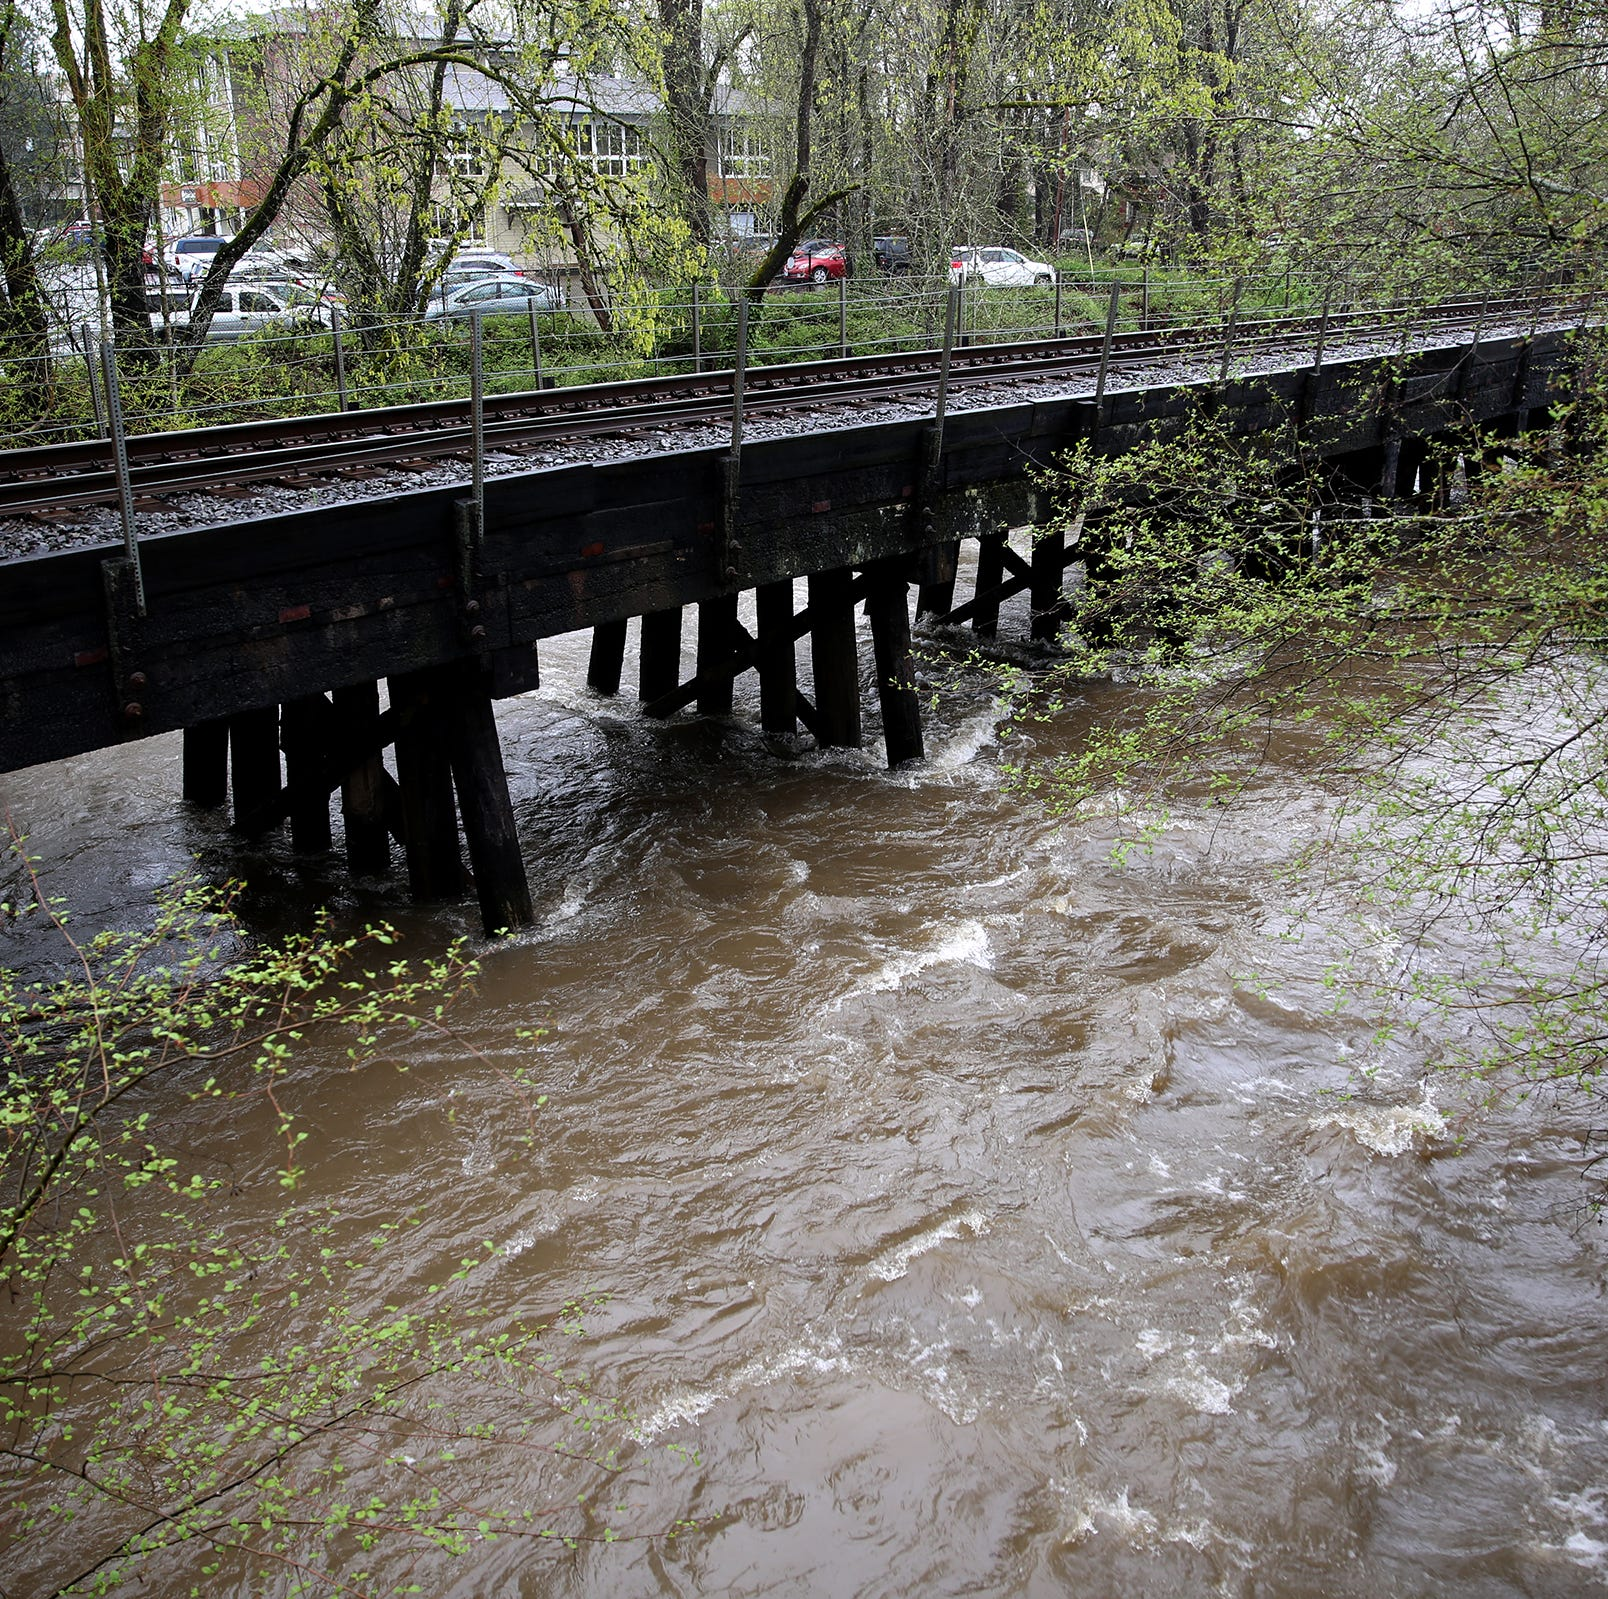 Salem prepares for high river levels on Willamette after evacuations in Eugene